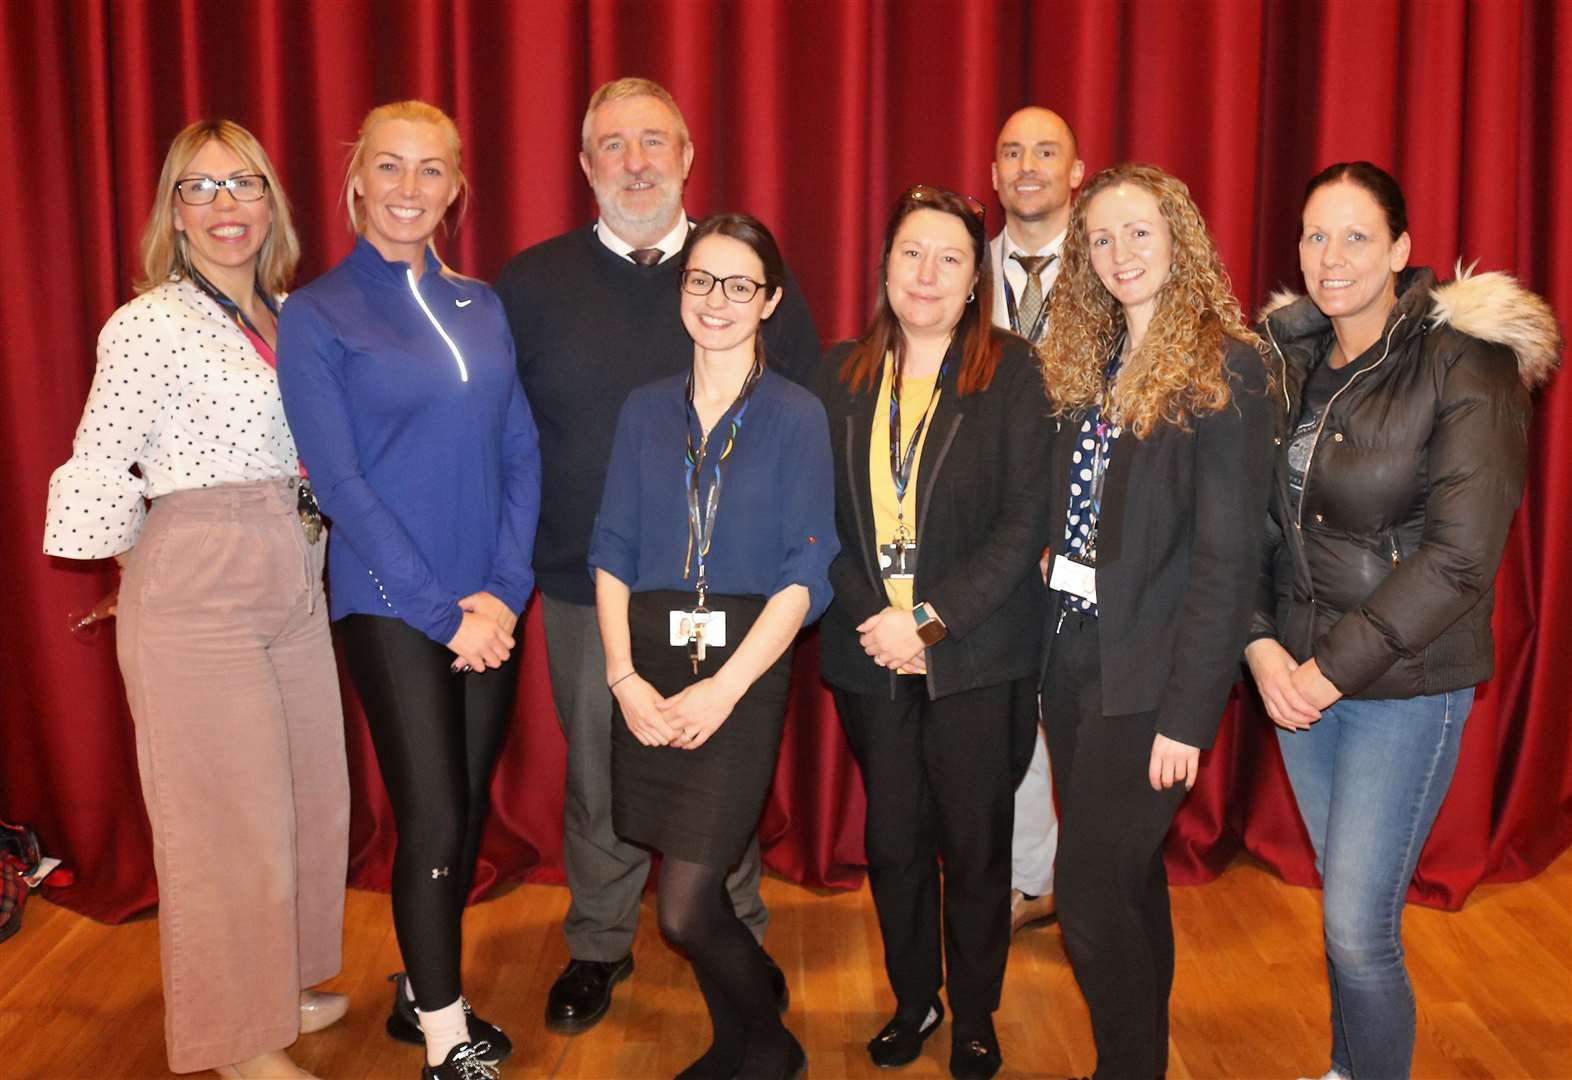 Staff at Wisbech's Thomas Clarkson Academy celebrate its 'Good' Ofsted judgement